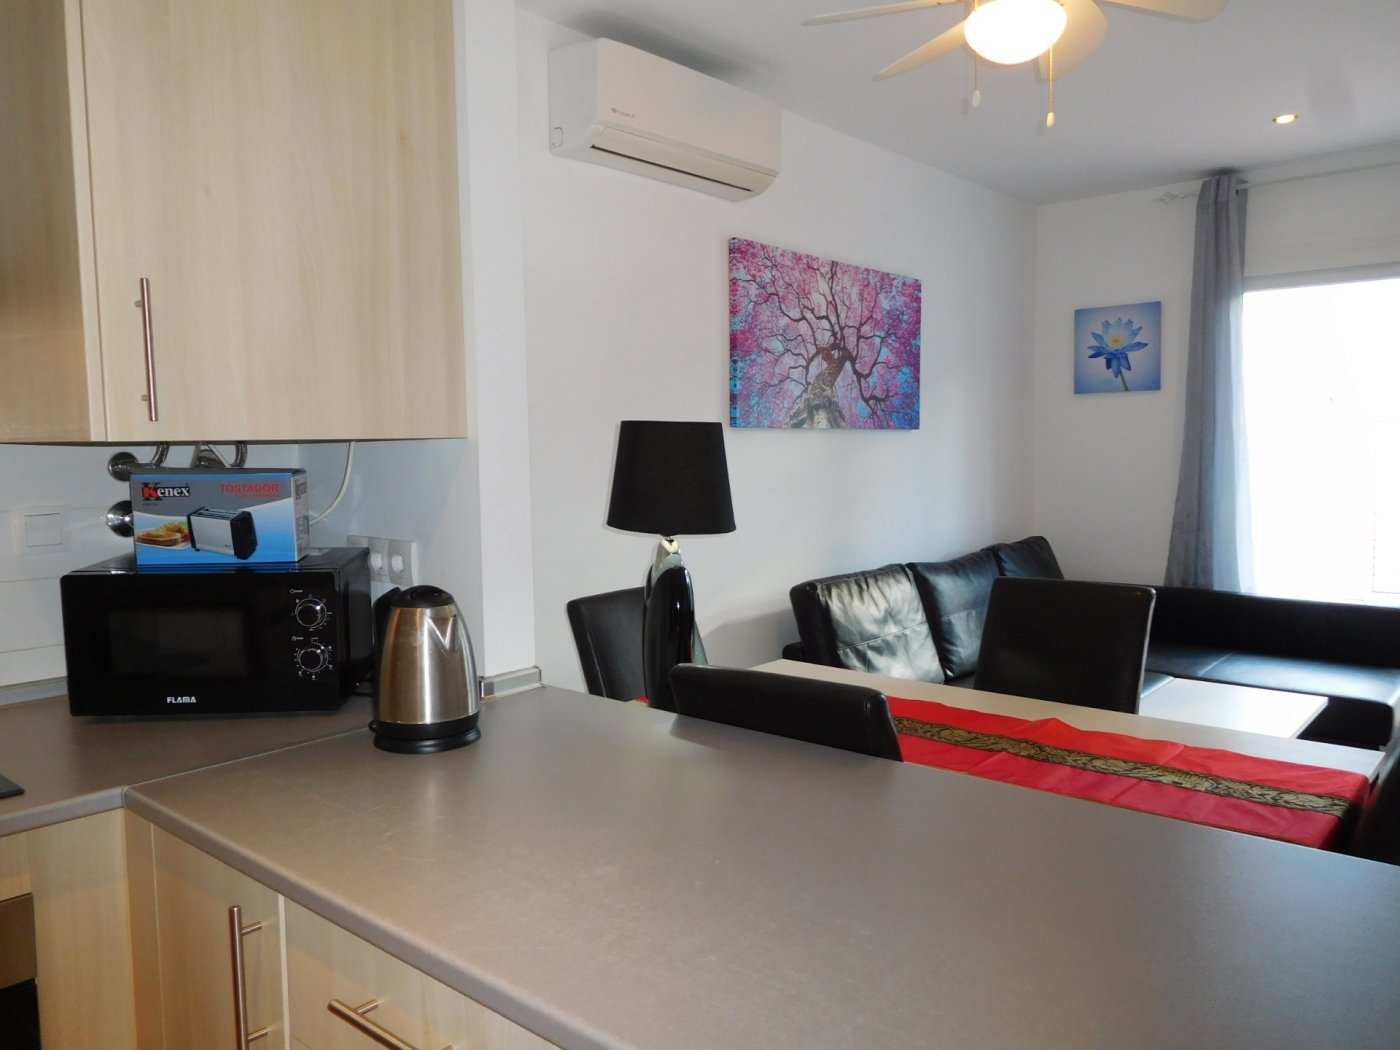 Gallery Image 7 of Flat For rent in Condado De Alhama, Alhama De Murcia With Pool